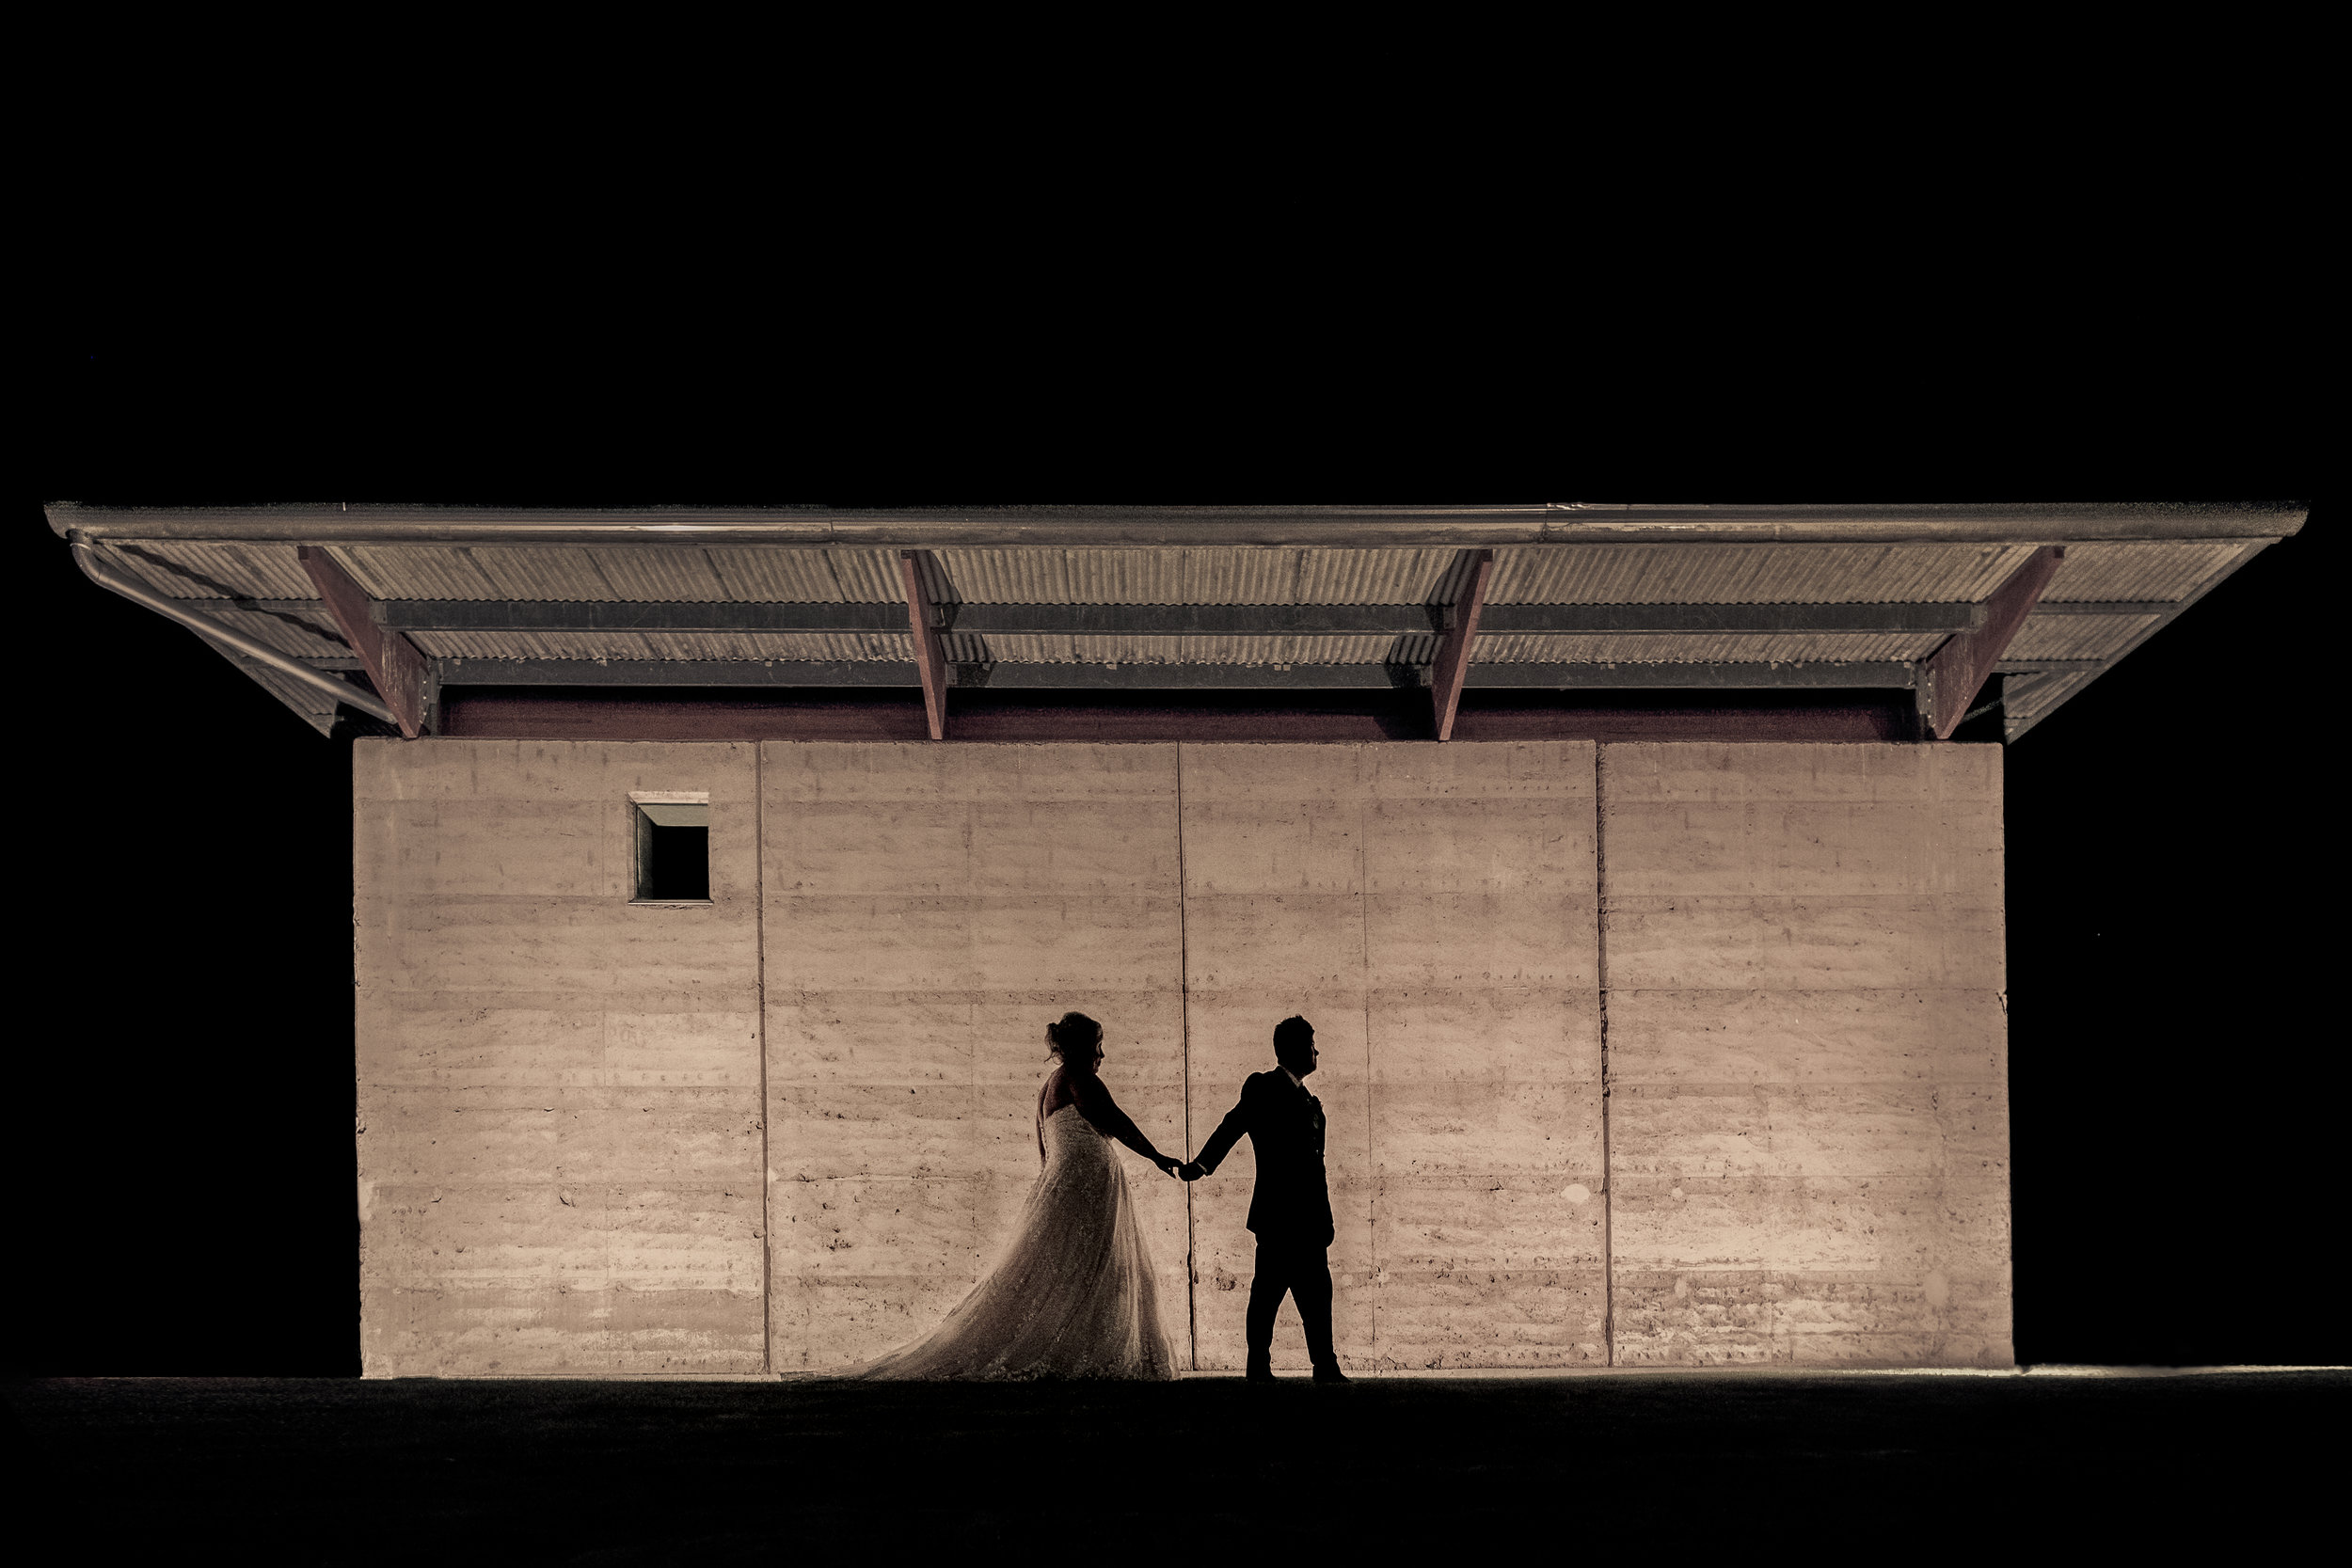 Bride and Groom walking together at night